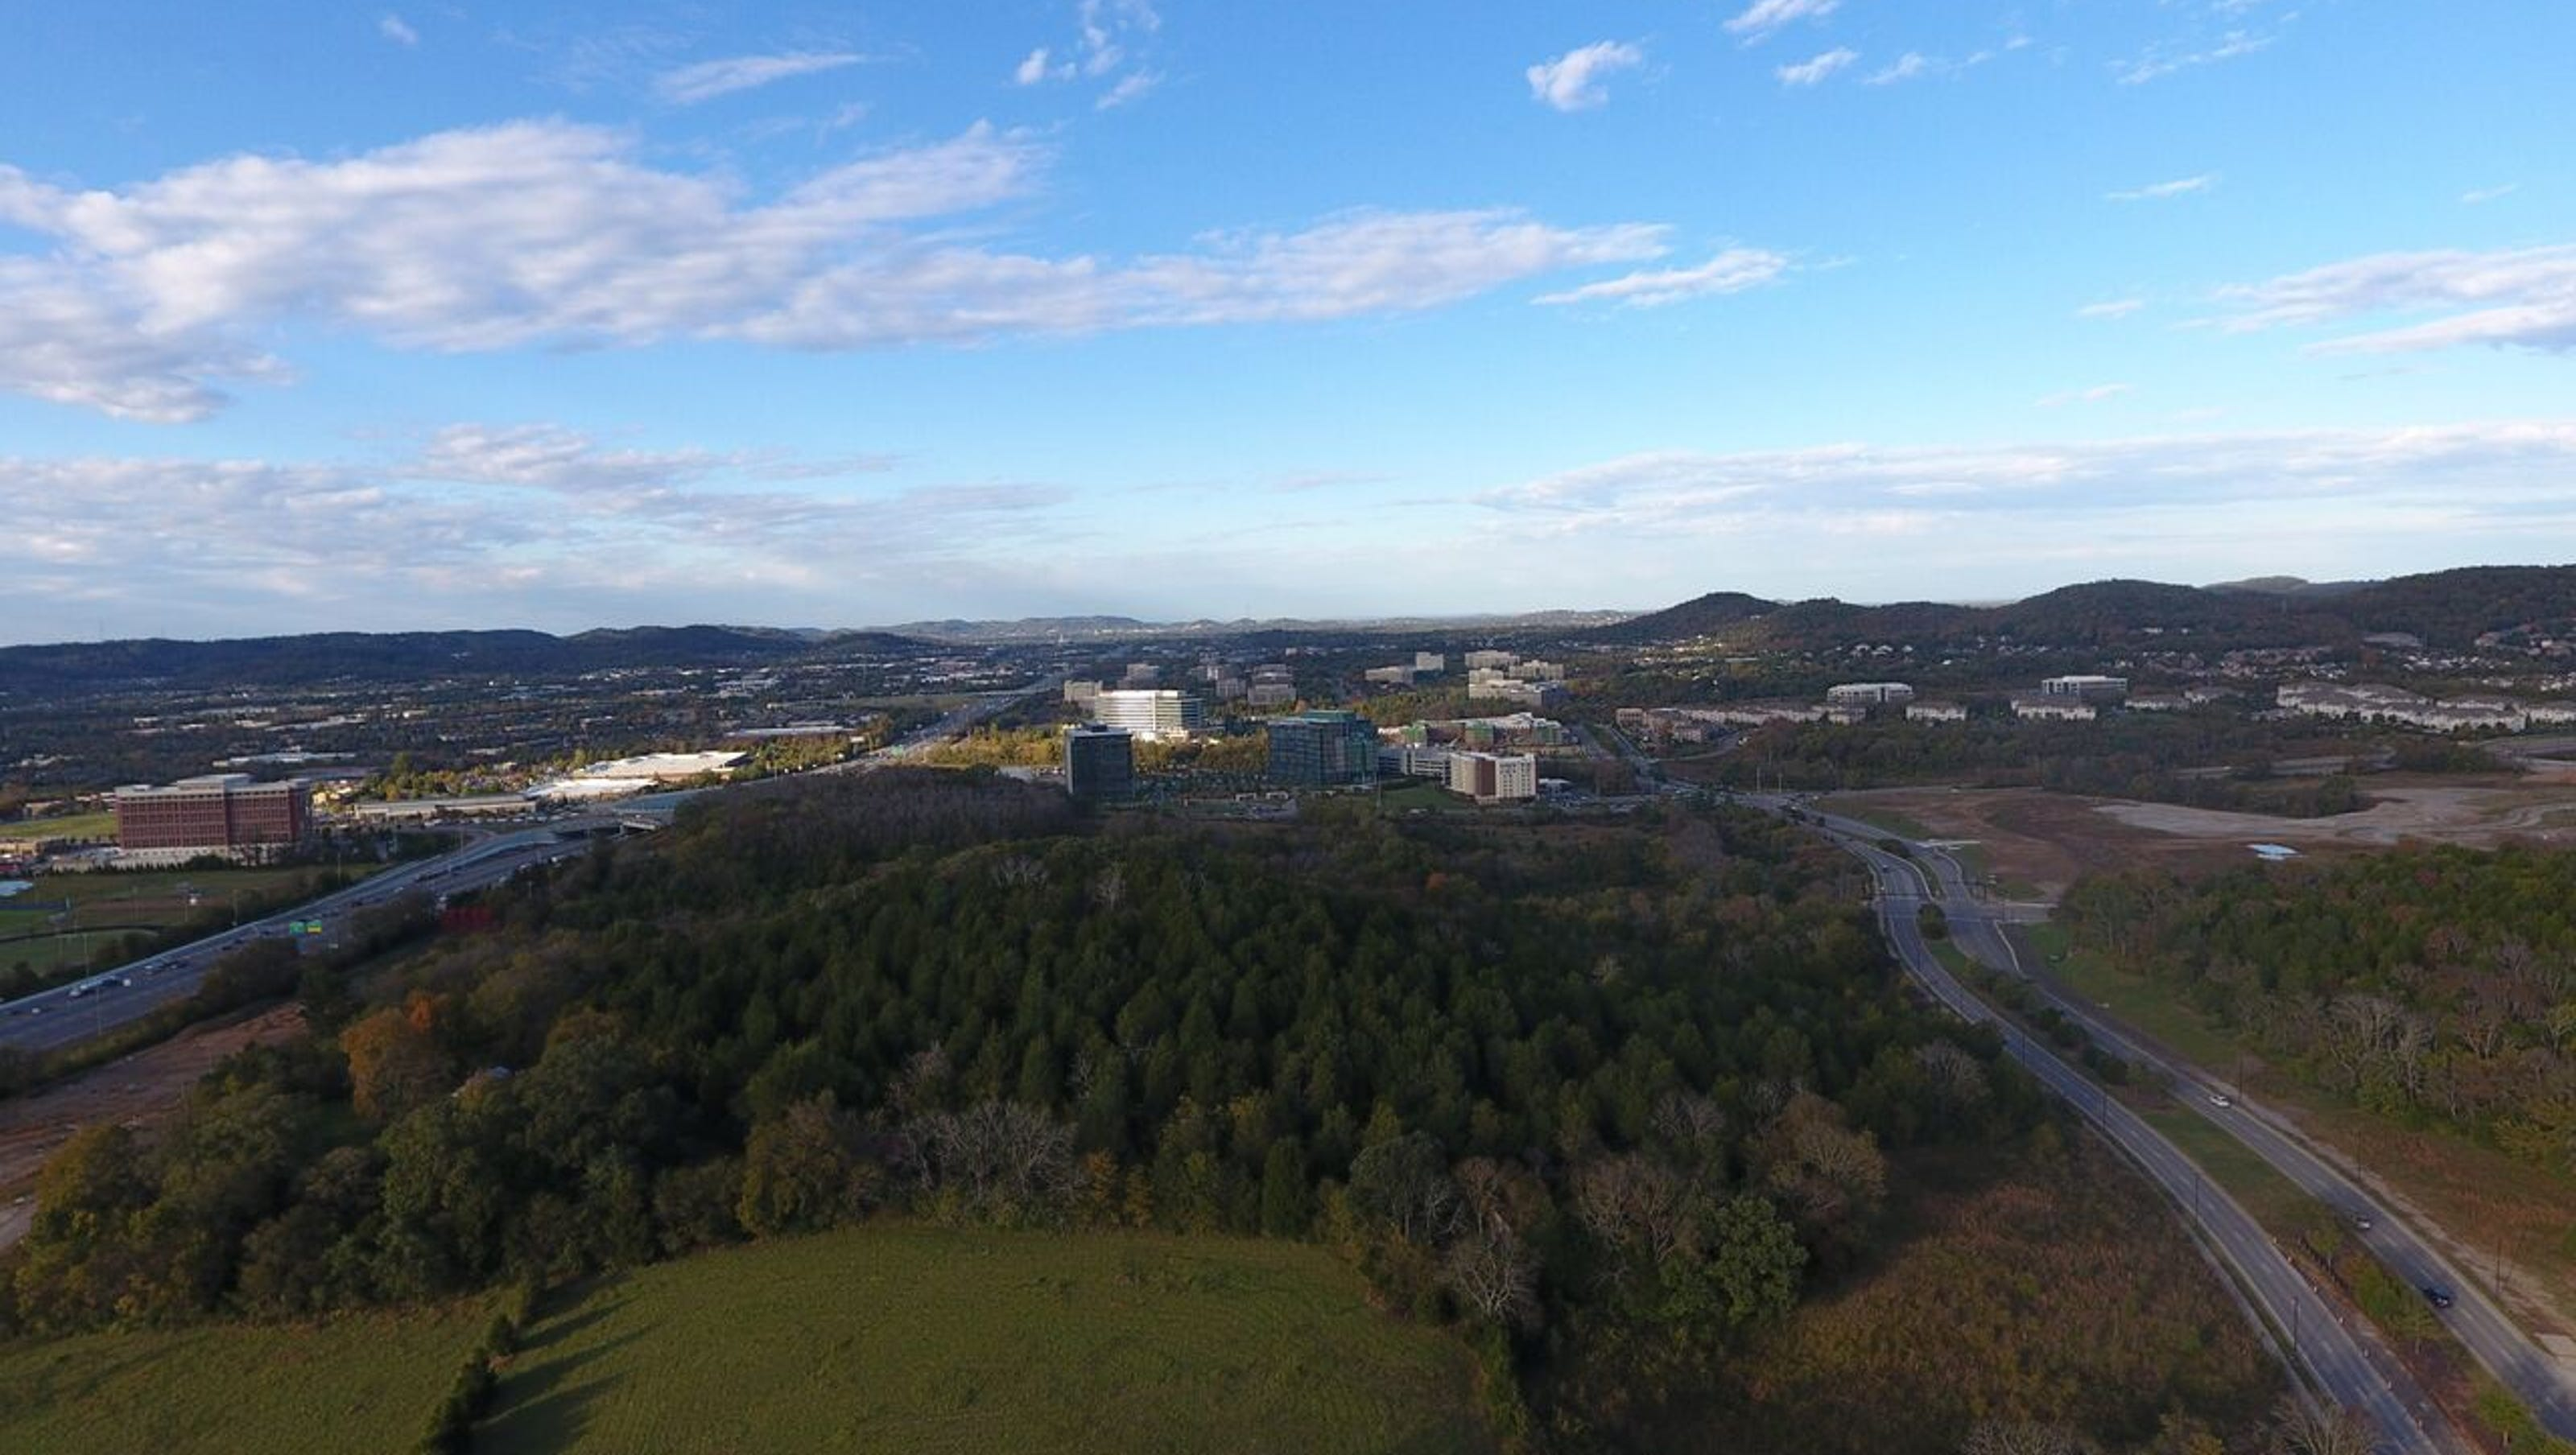 new development coming to cool springs near nissan hq